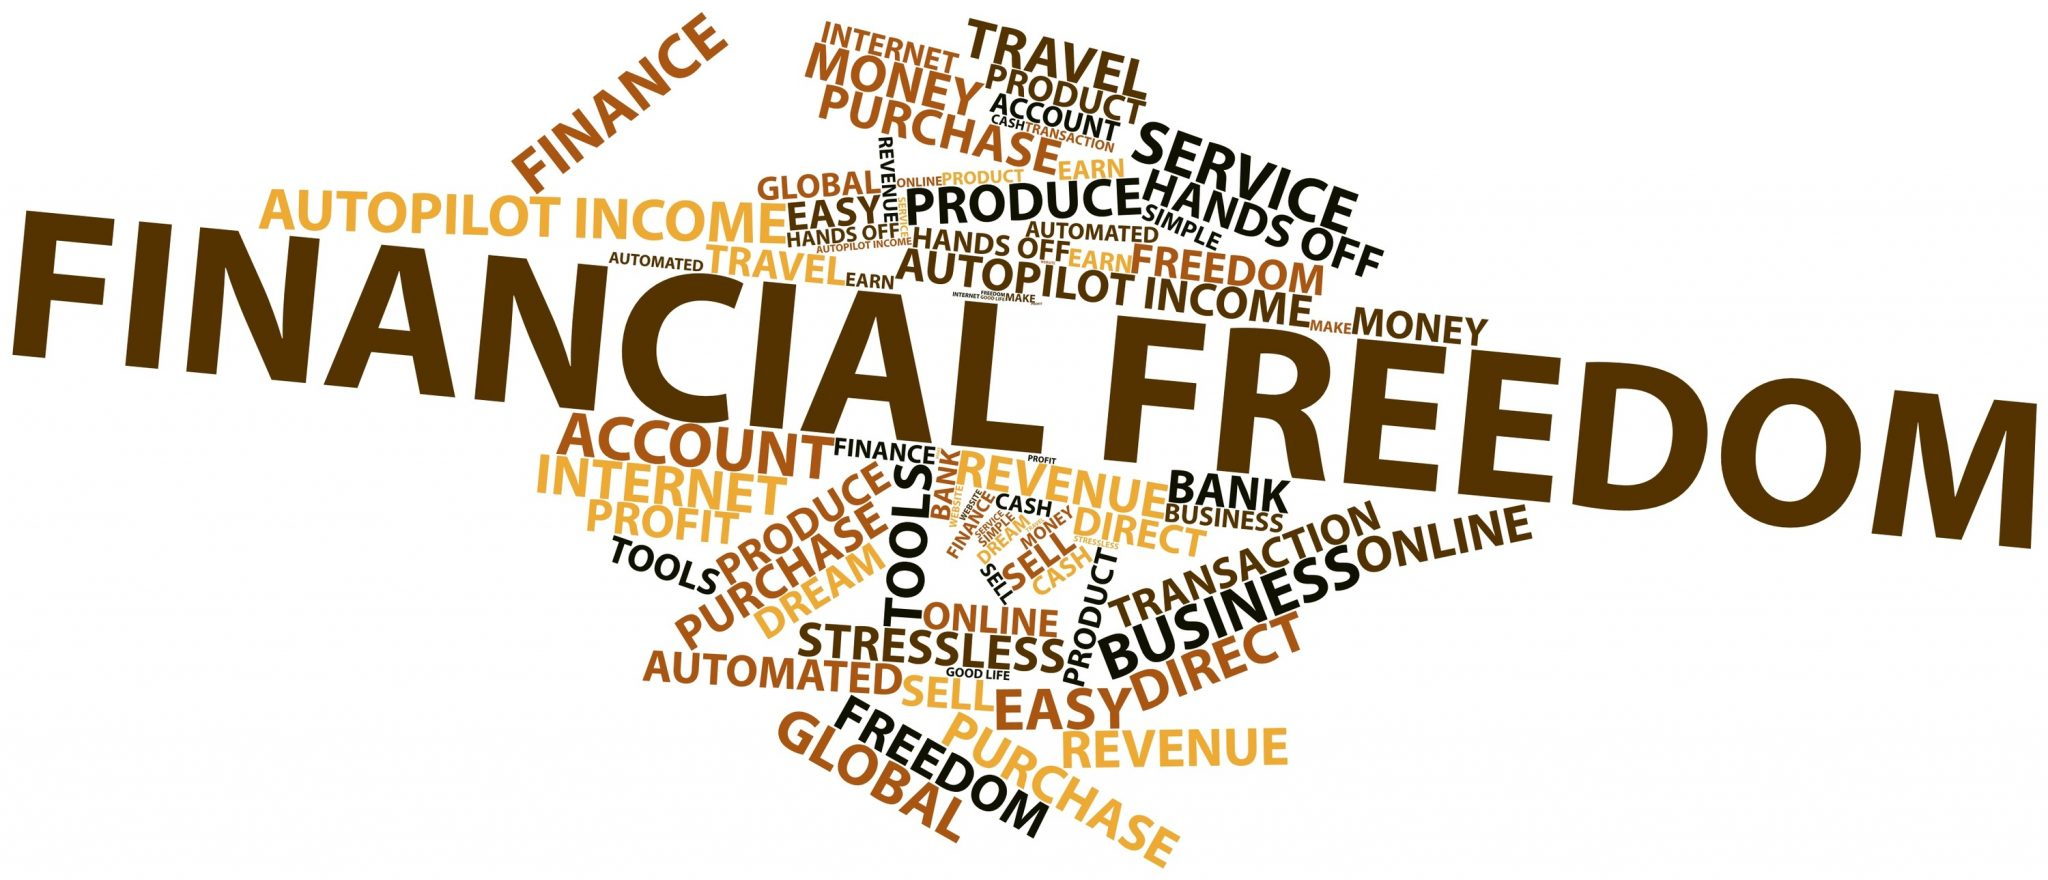 financial-freedom benefits of being an entrepreneur مزایای کارآفرینی